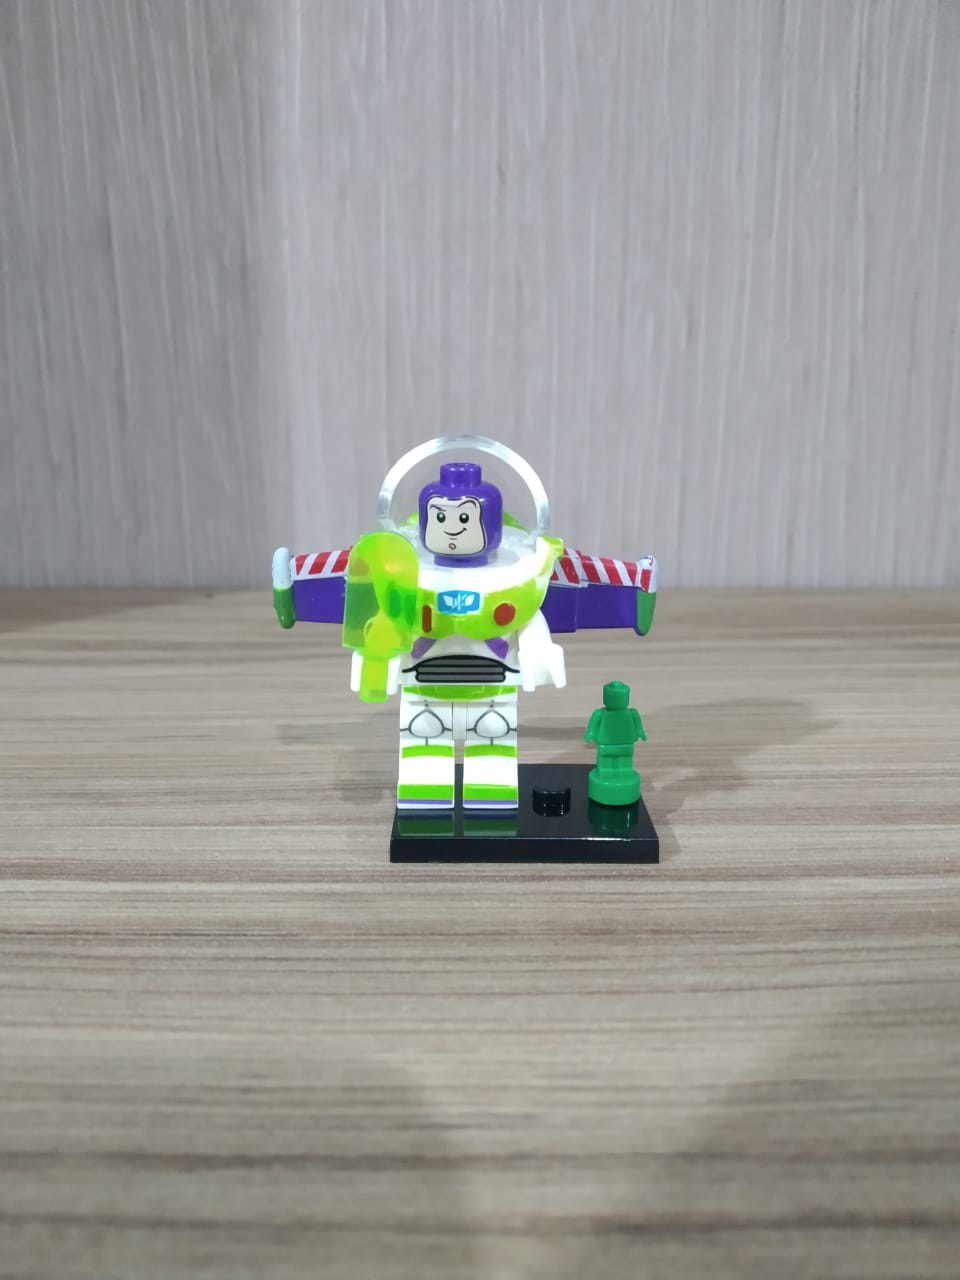 LEGO: Buzz Lightyear - Toy Story